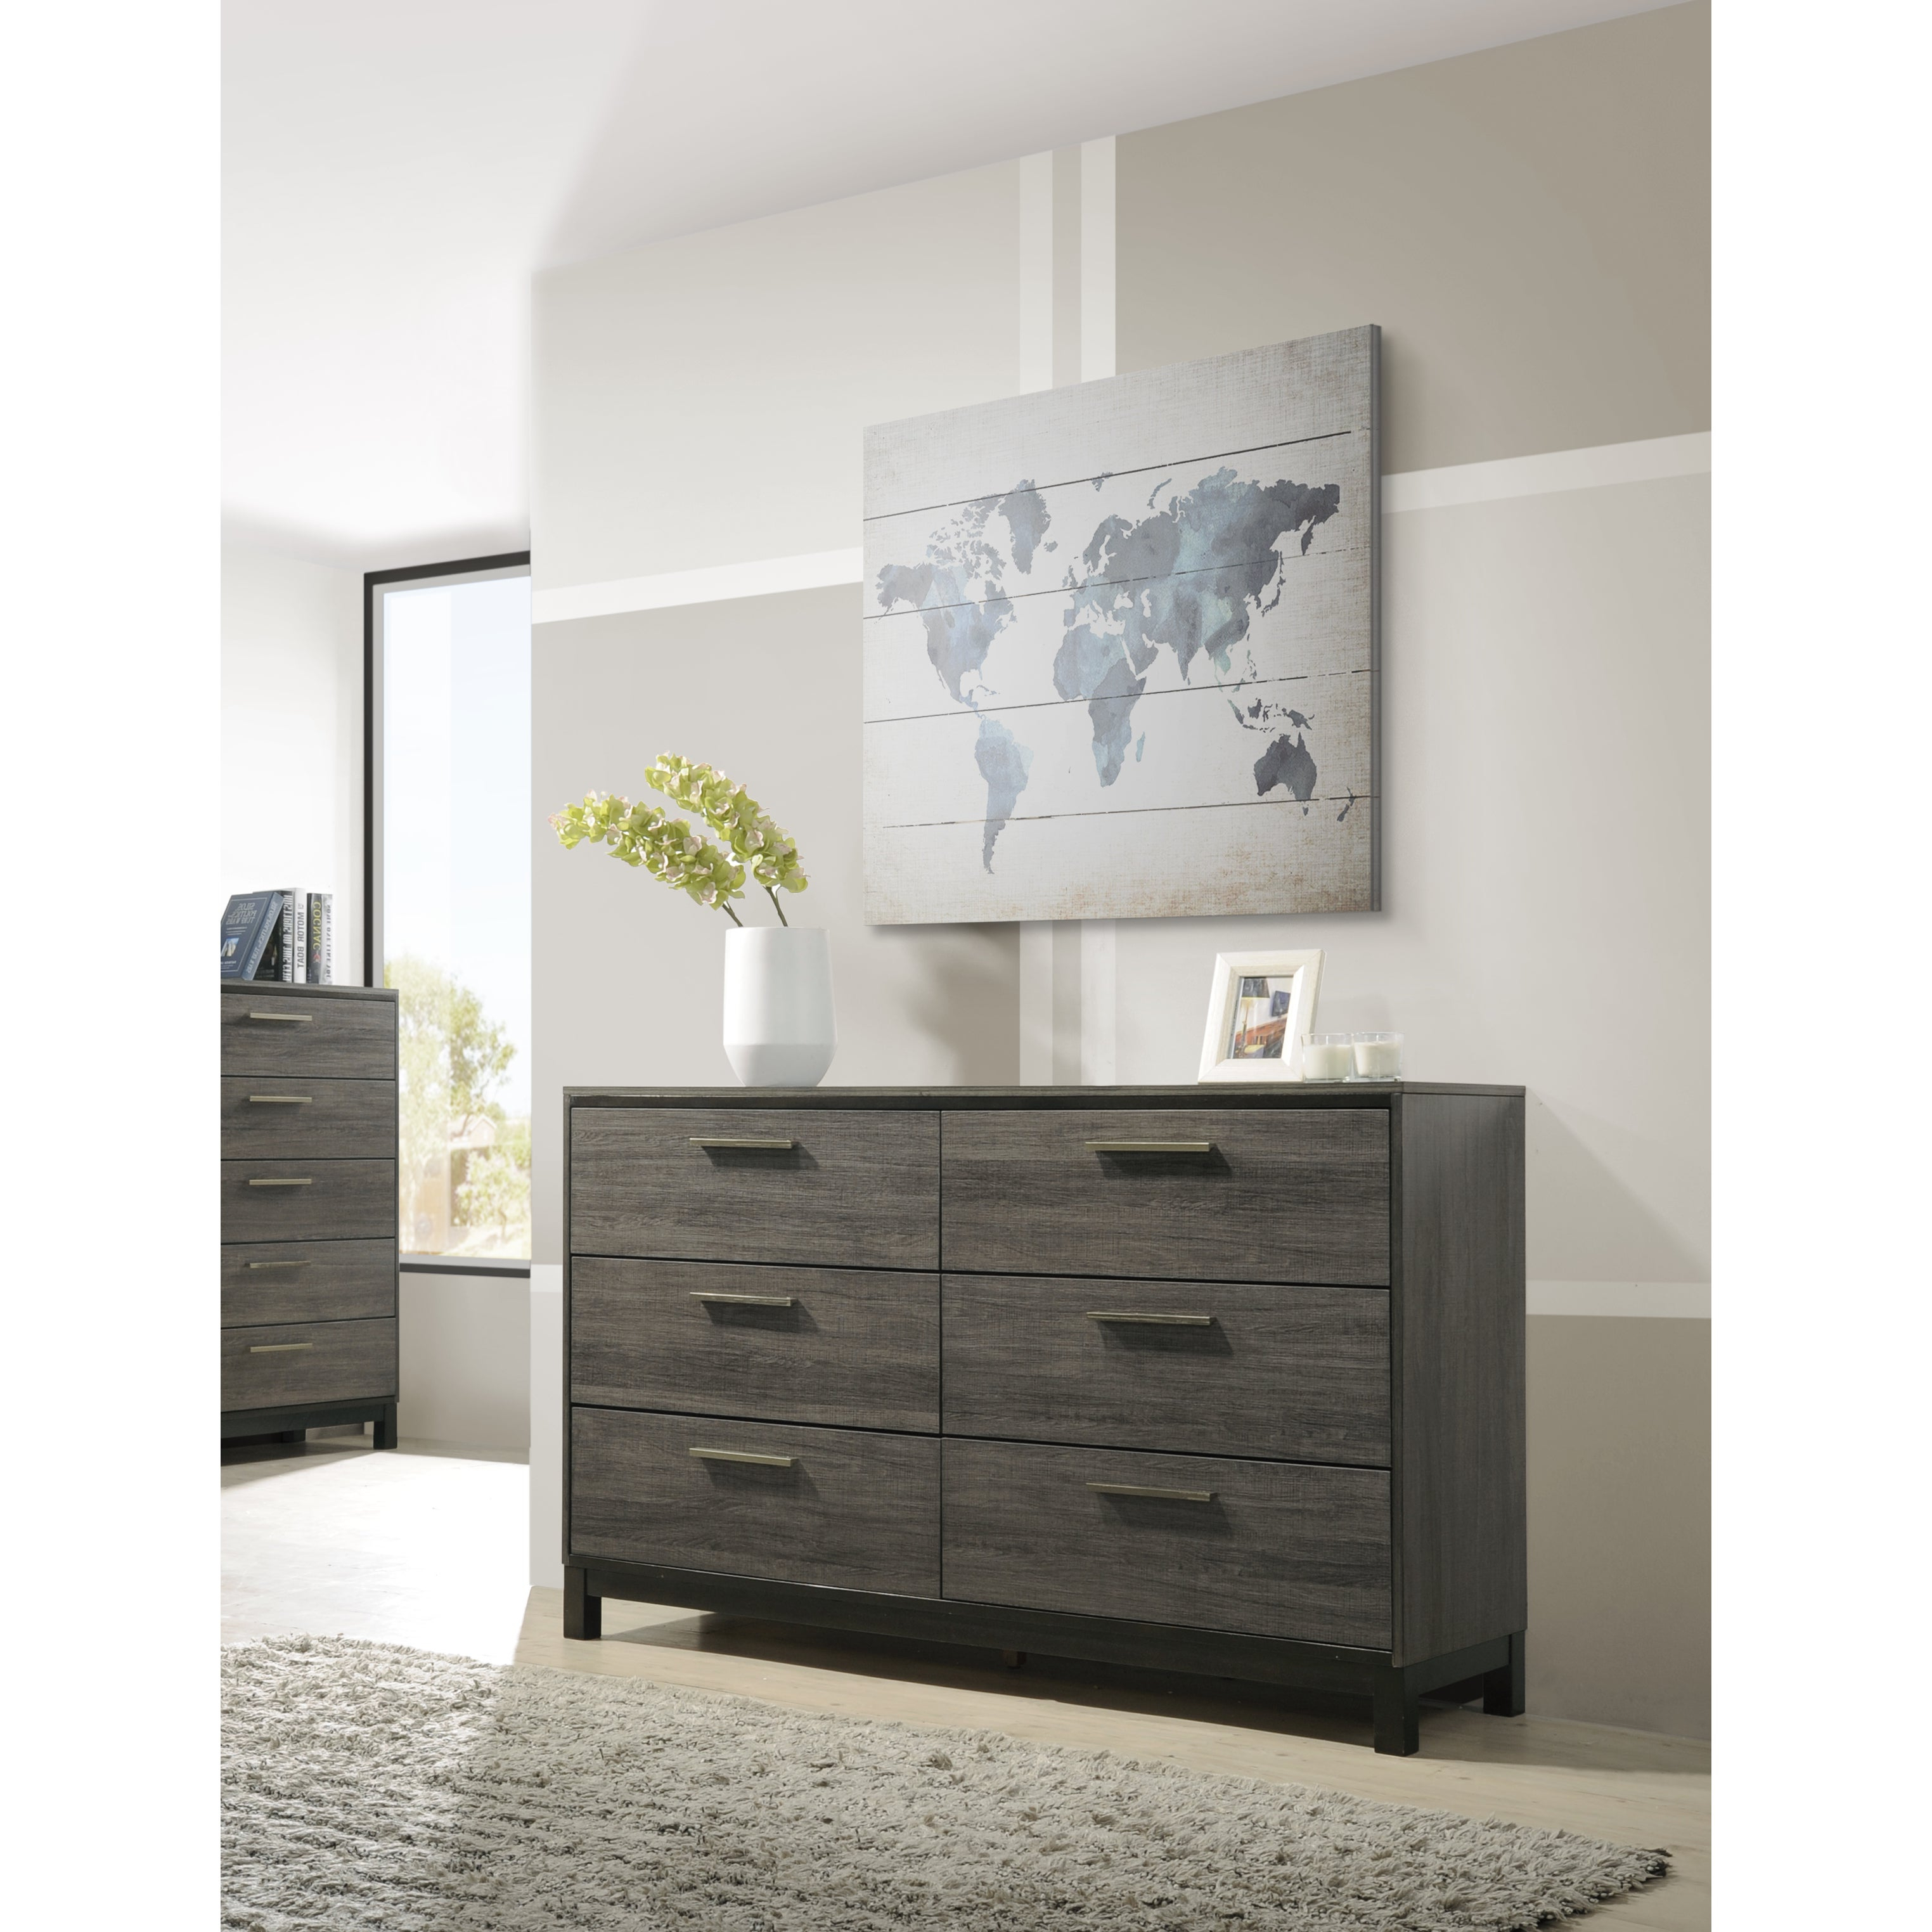 Buy Size 9 Drawer Dressers & Chests Online At Overstock With Jessenia Sideboards (View 12 of 20)